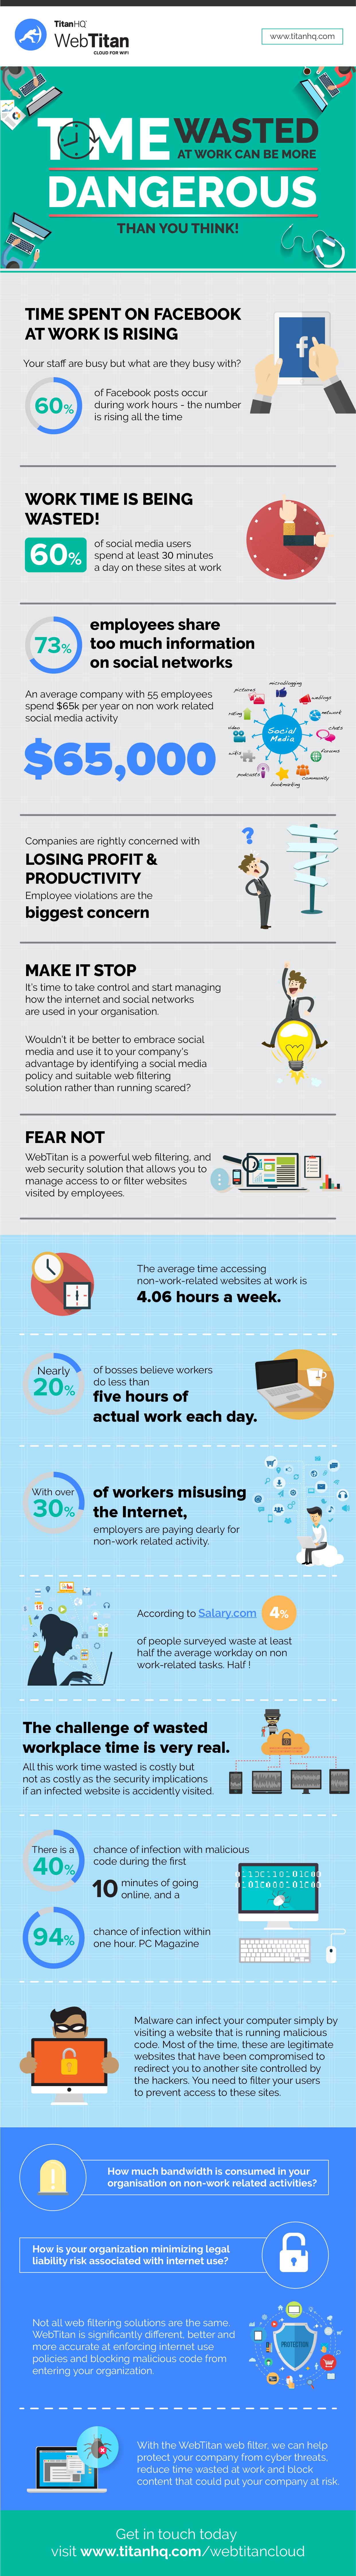 Time Wasted At Work - Risks